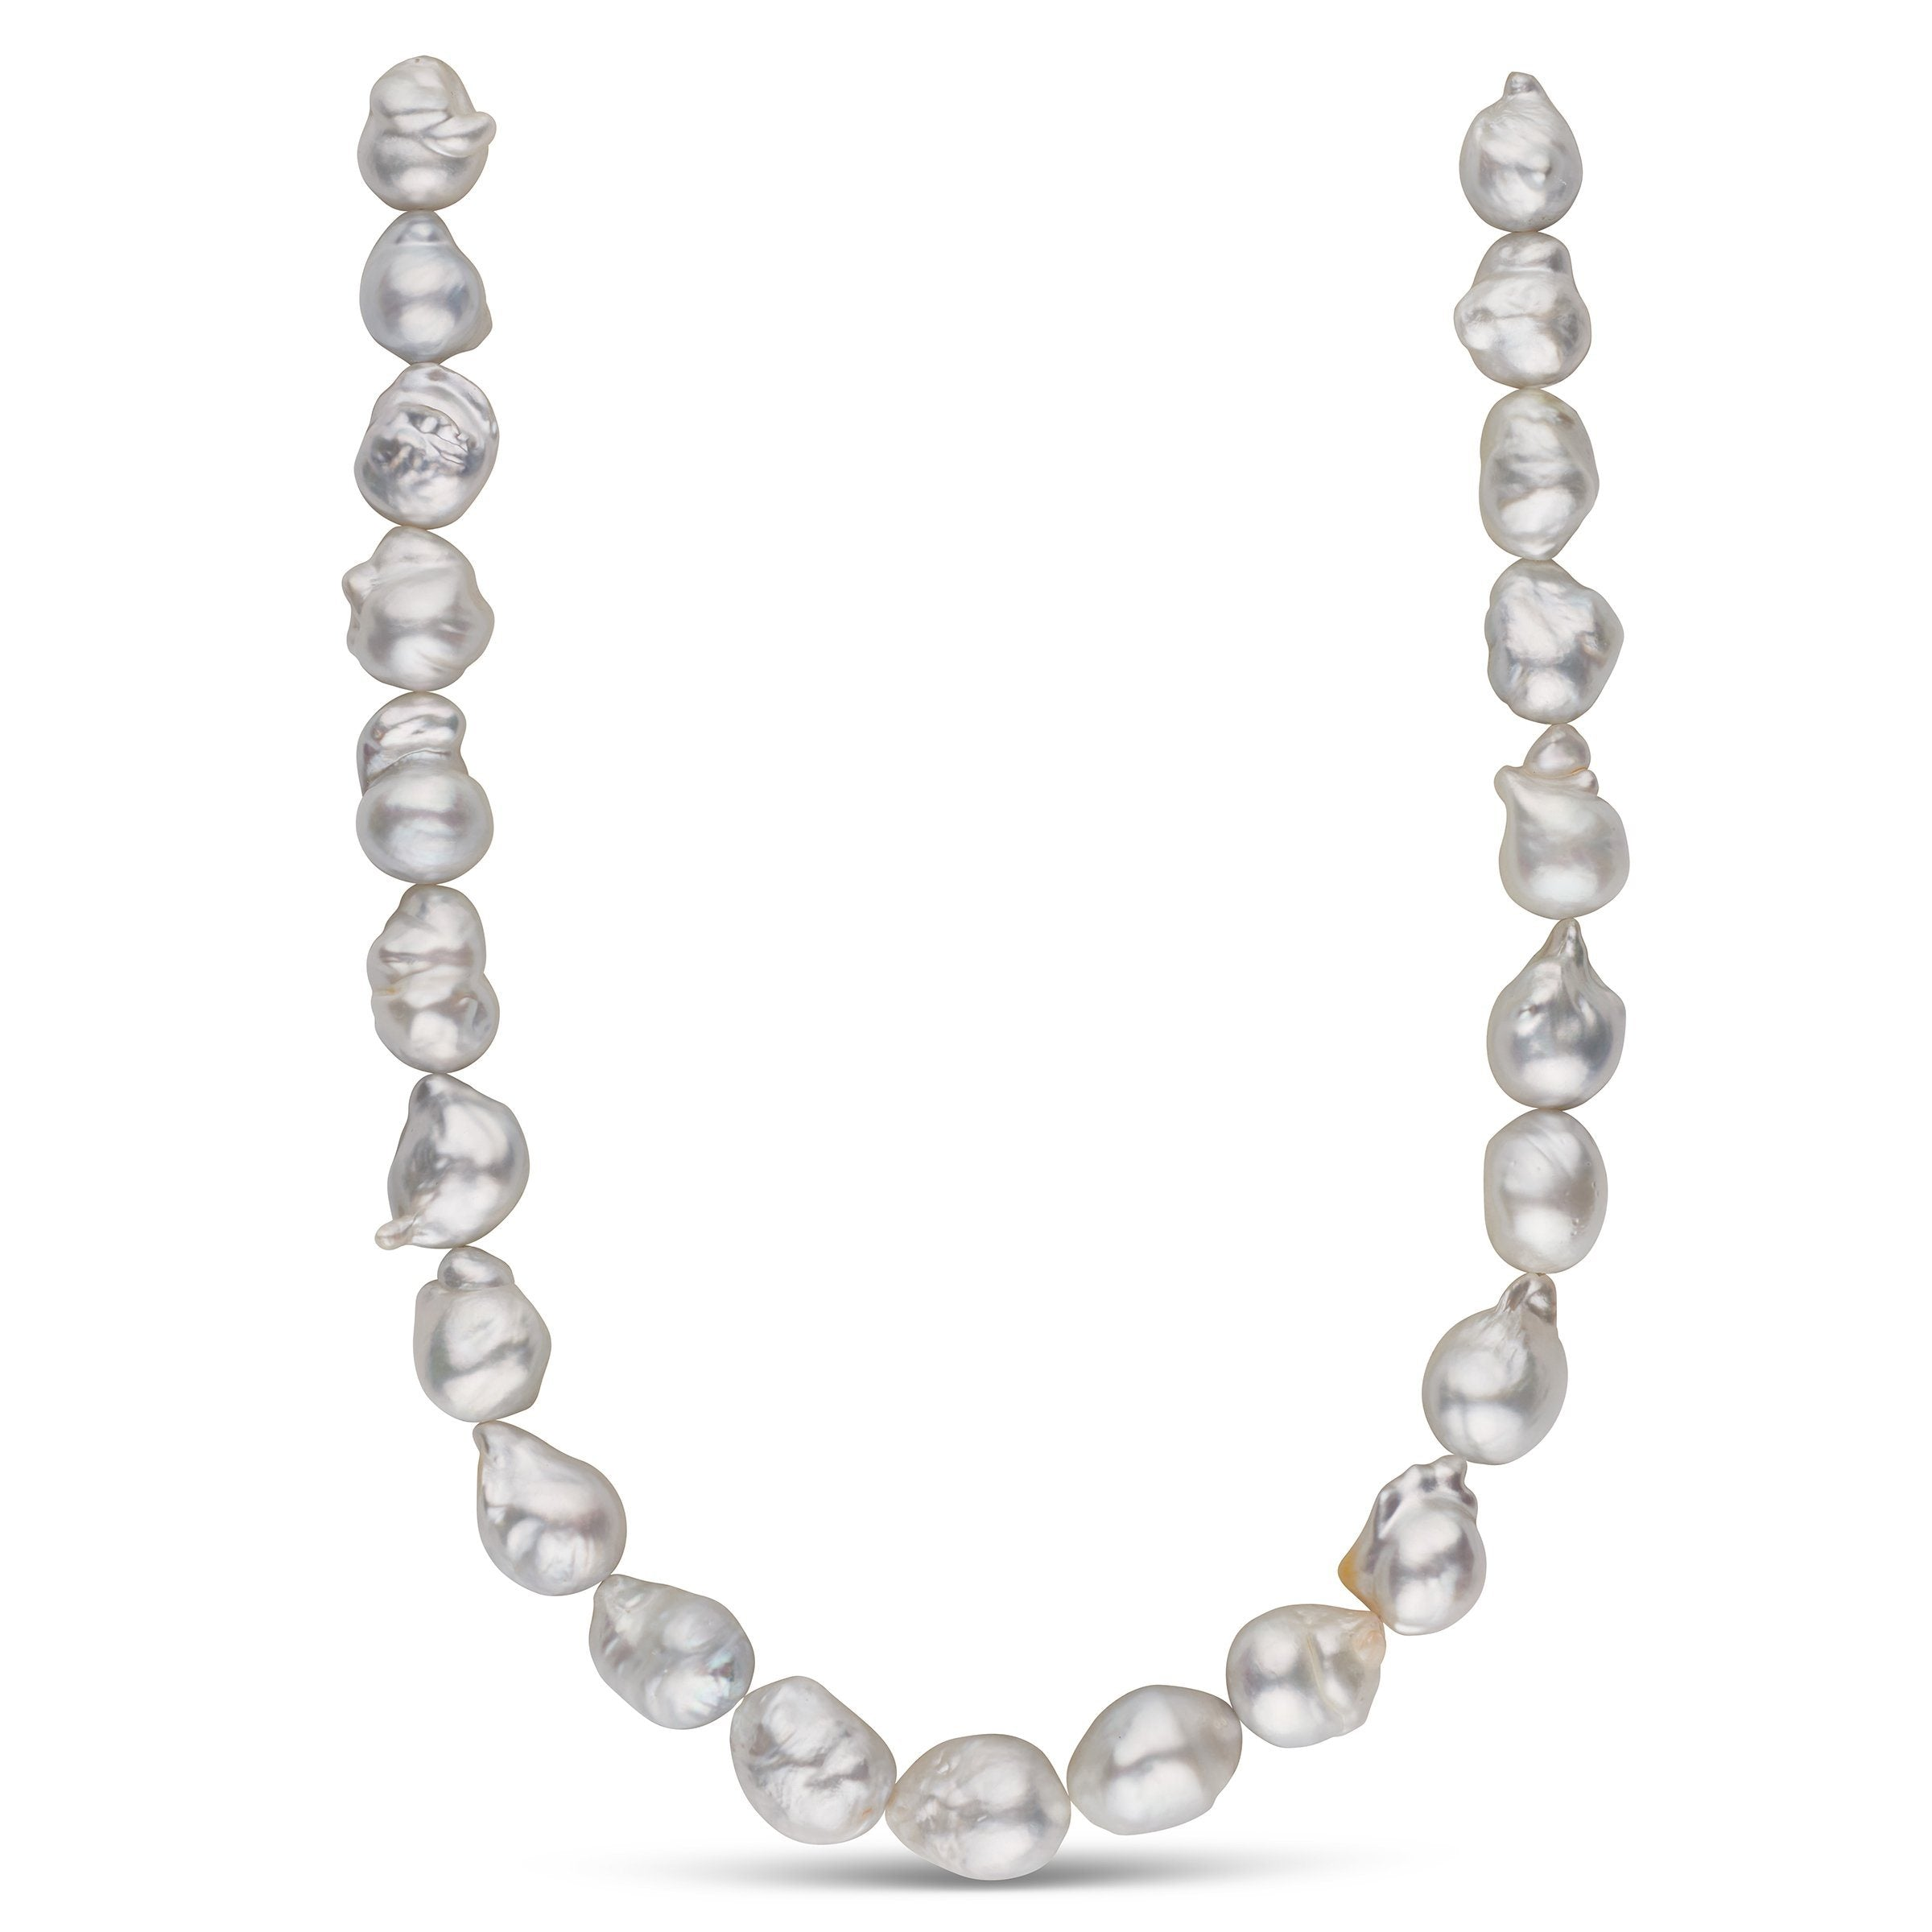 The Rhapsody White South Sea Pearl Necklace